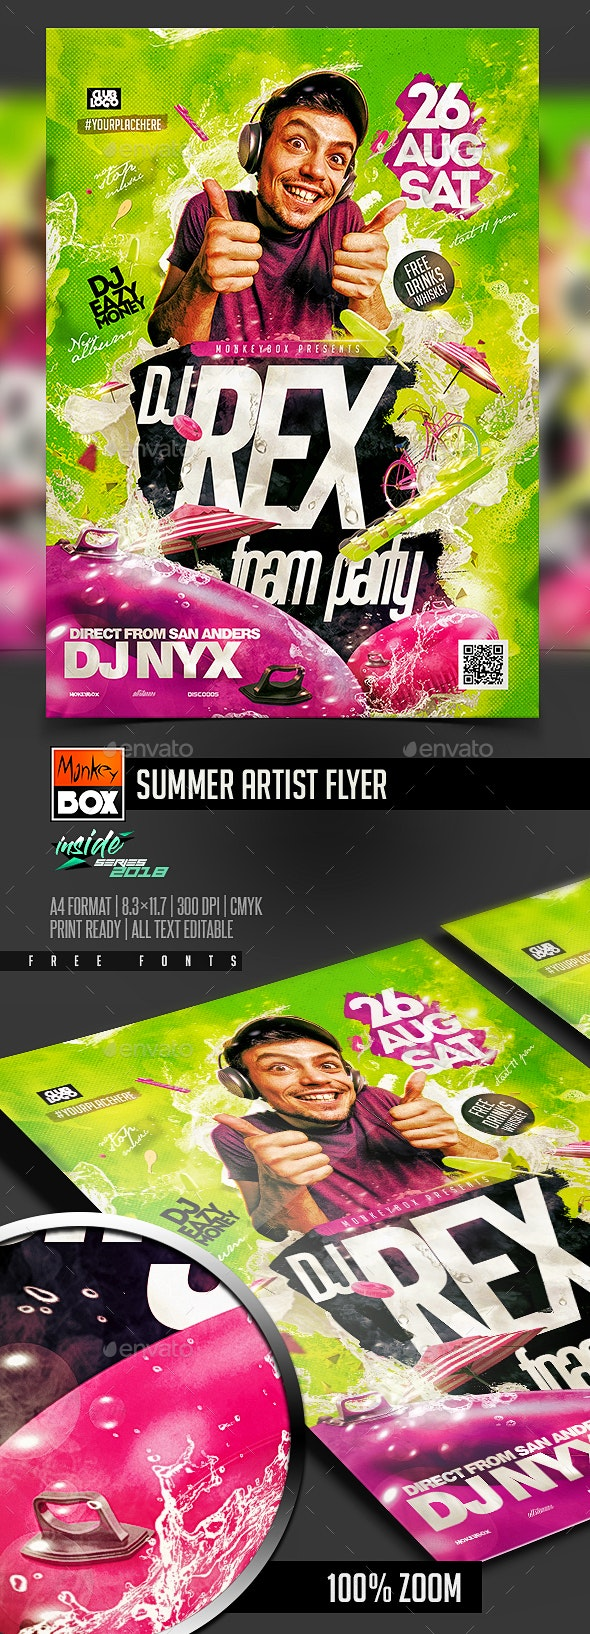 Summer Artist Flyer - Flyers Print Templates